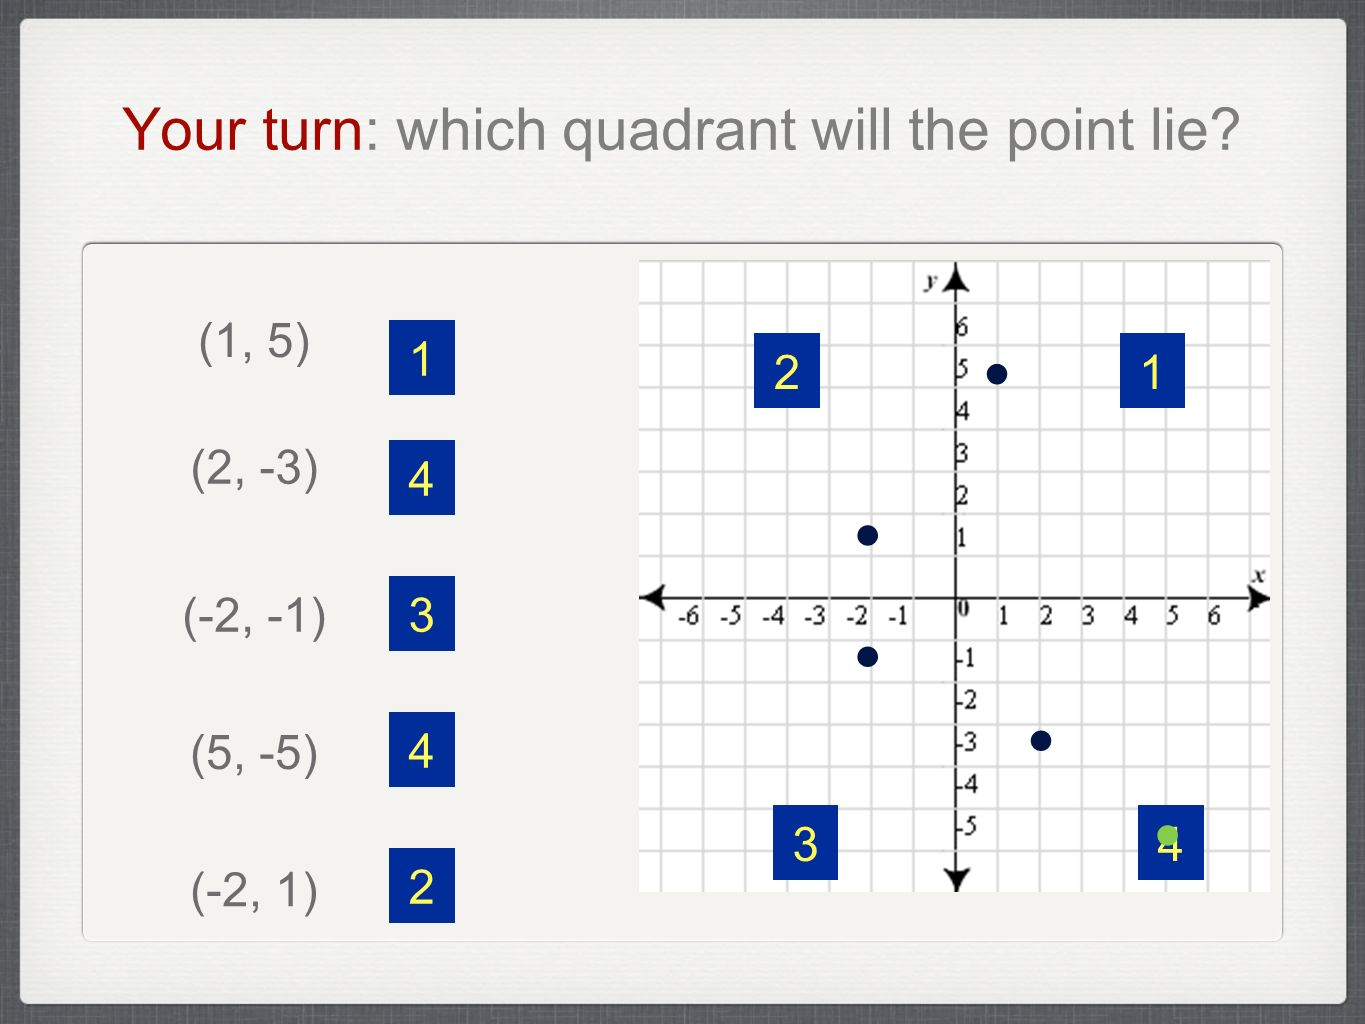 Your turn: which quadrant will the point lie